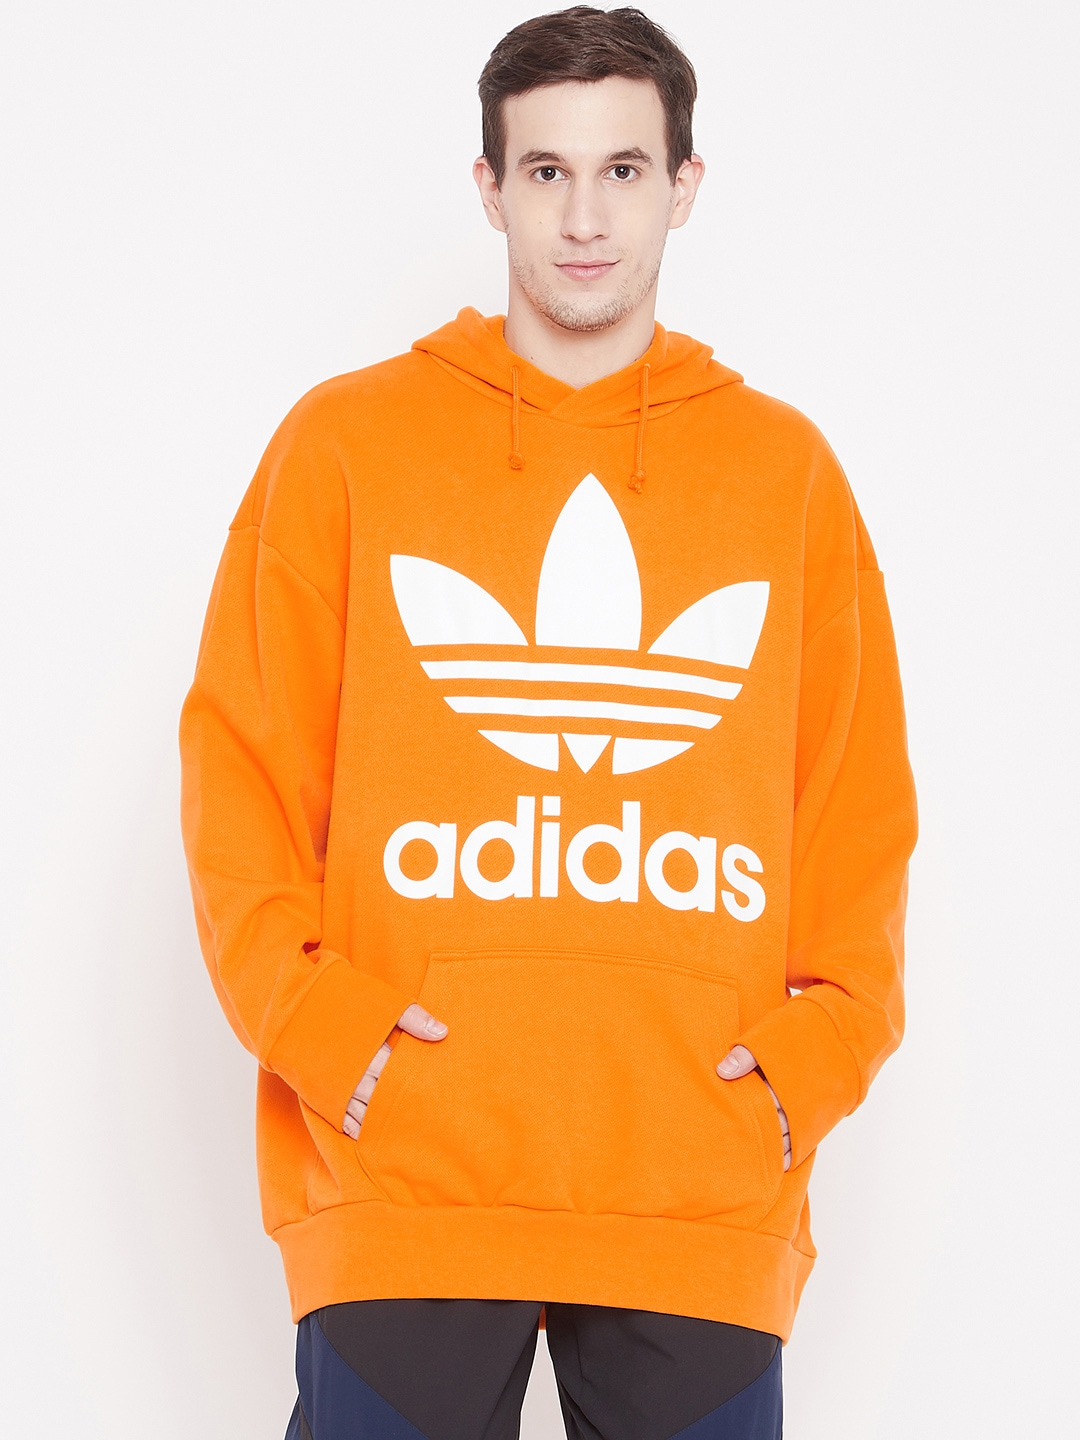 d0d0cb4c26ac Adidas Originals Sweatshirts - Buy Adidas Originals Sweatshirts Online in  India